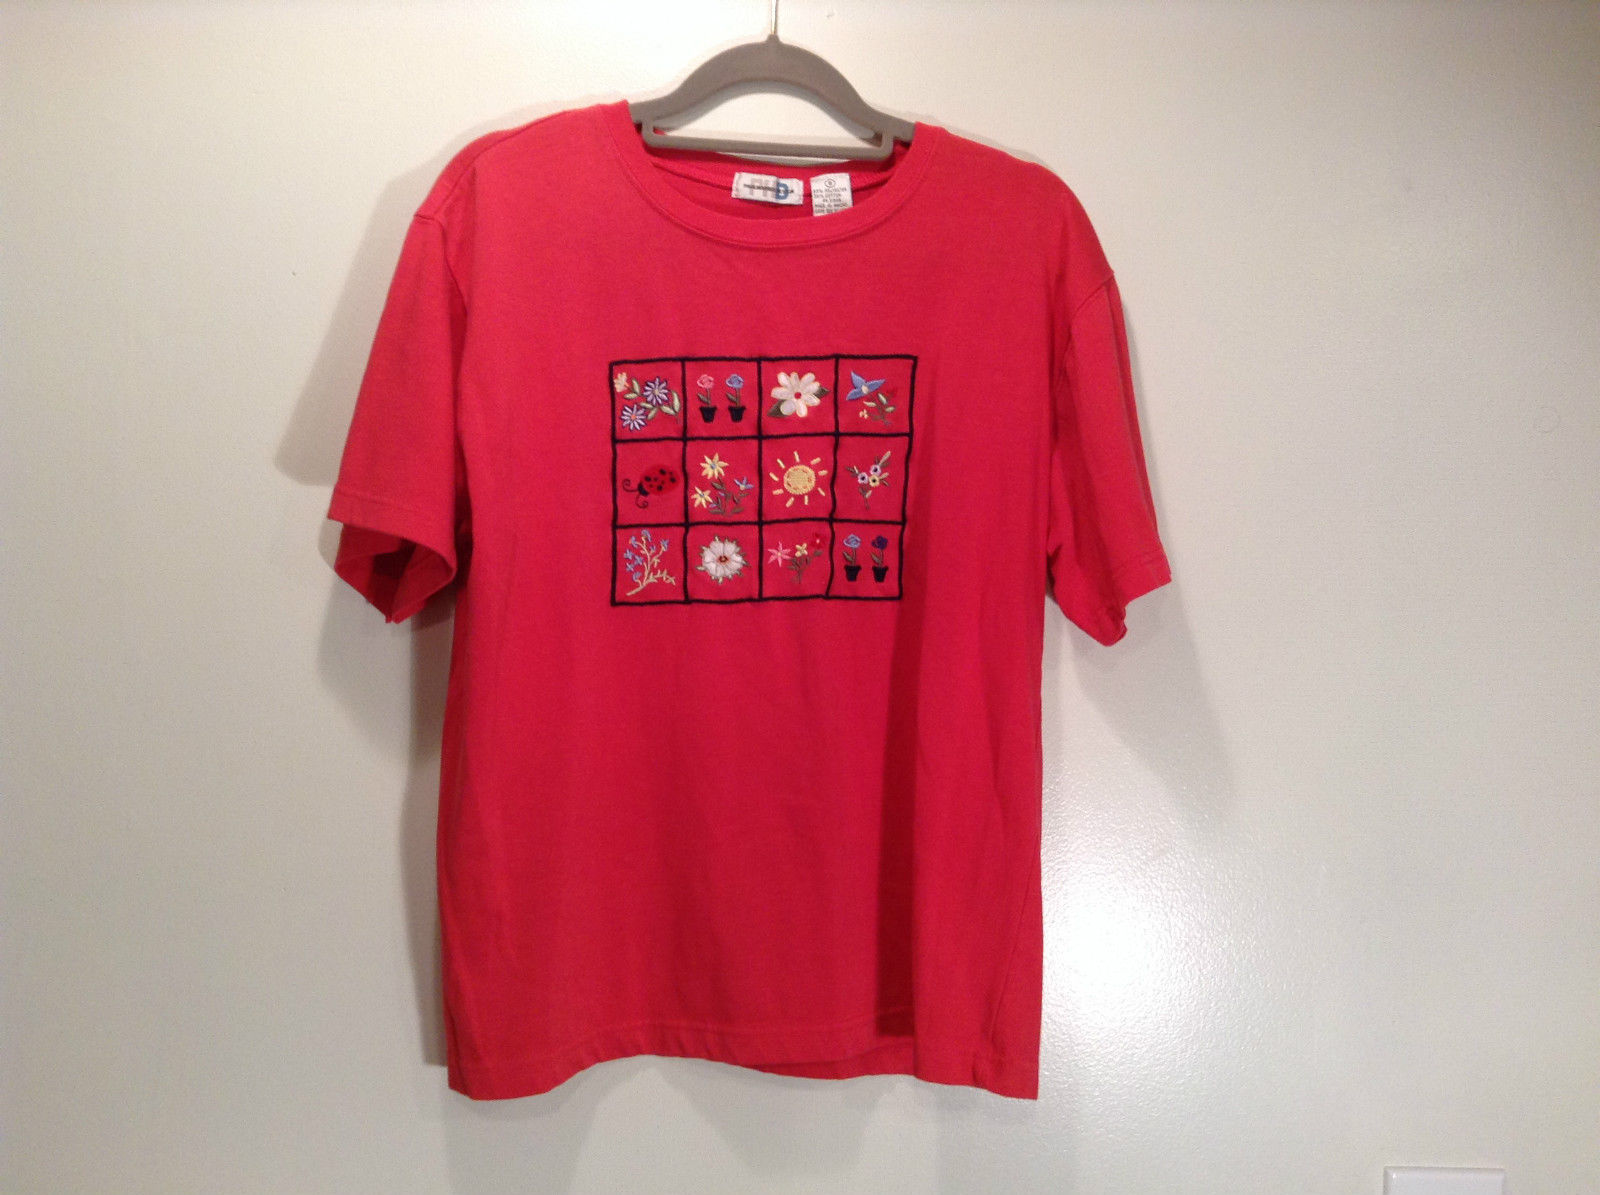 Paul Harris Design Red Short Sleeve T Shirt with Flowers on Front Size Small